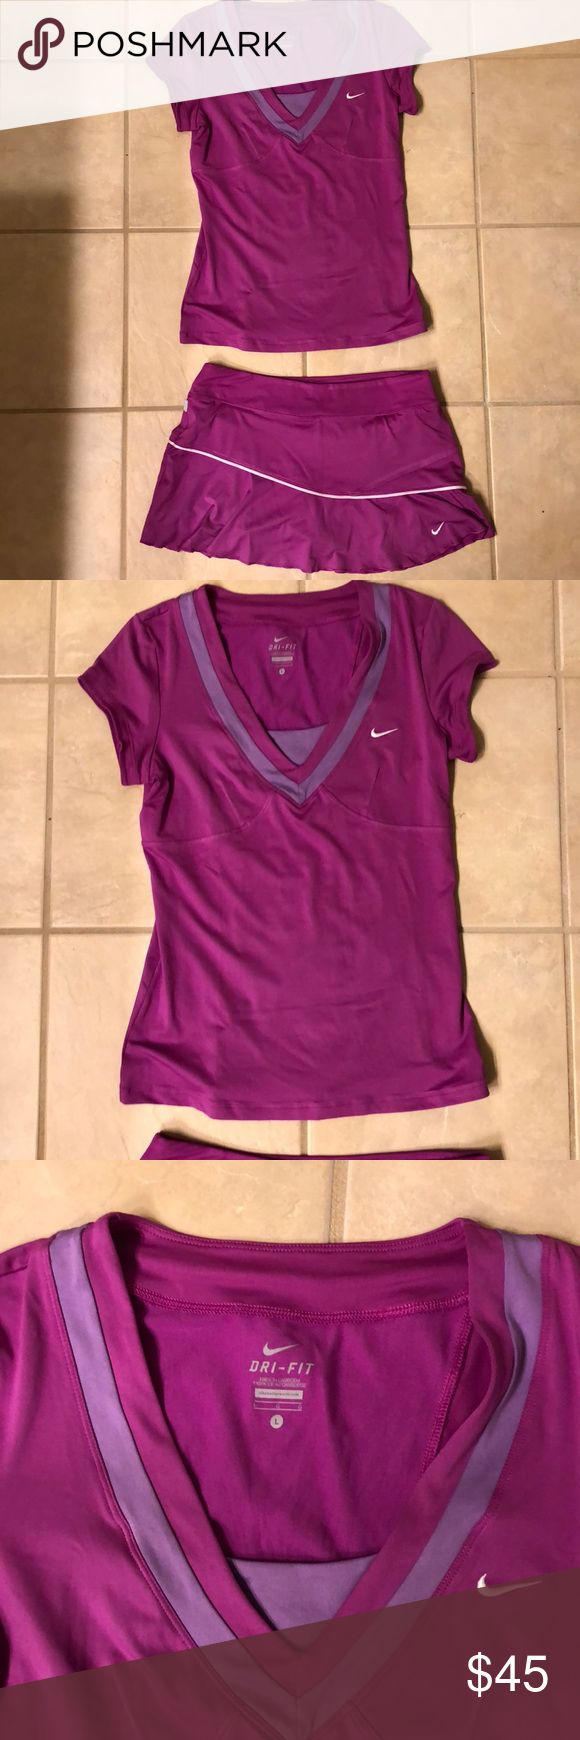 Nike Dri-Fit tennis 🎾 wear This awesome Dri-Fit Nike outfit is great for working out or wearing as an outfit for the day. The bottom piece is a skort which is shown in pics. Nike Other